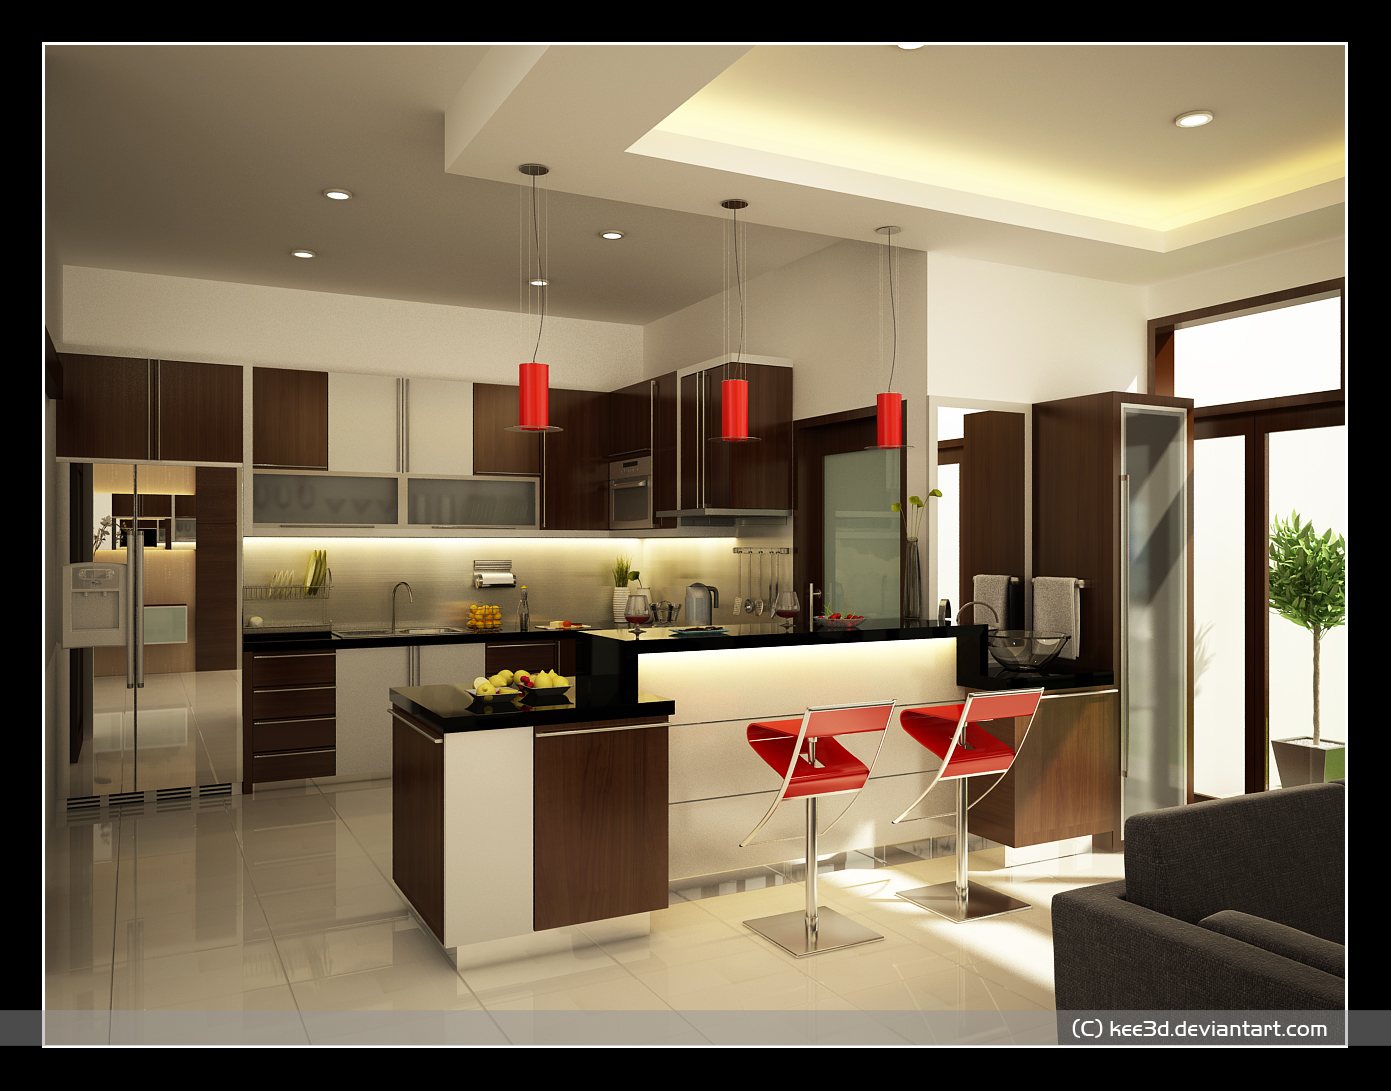 Kitchen Decor Kitchen Design Ideas